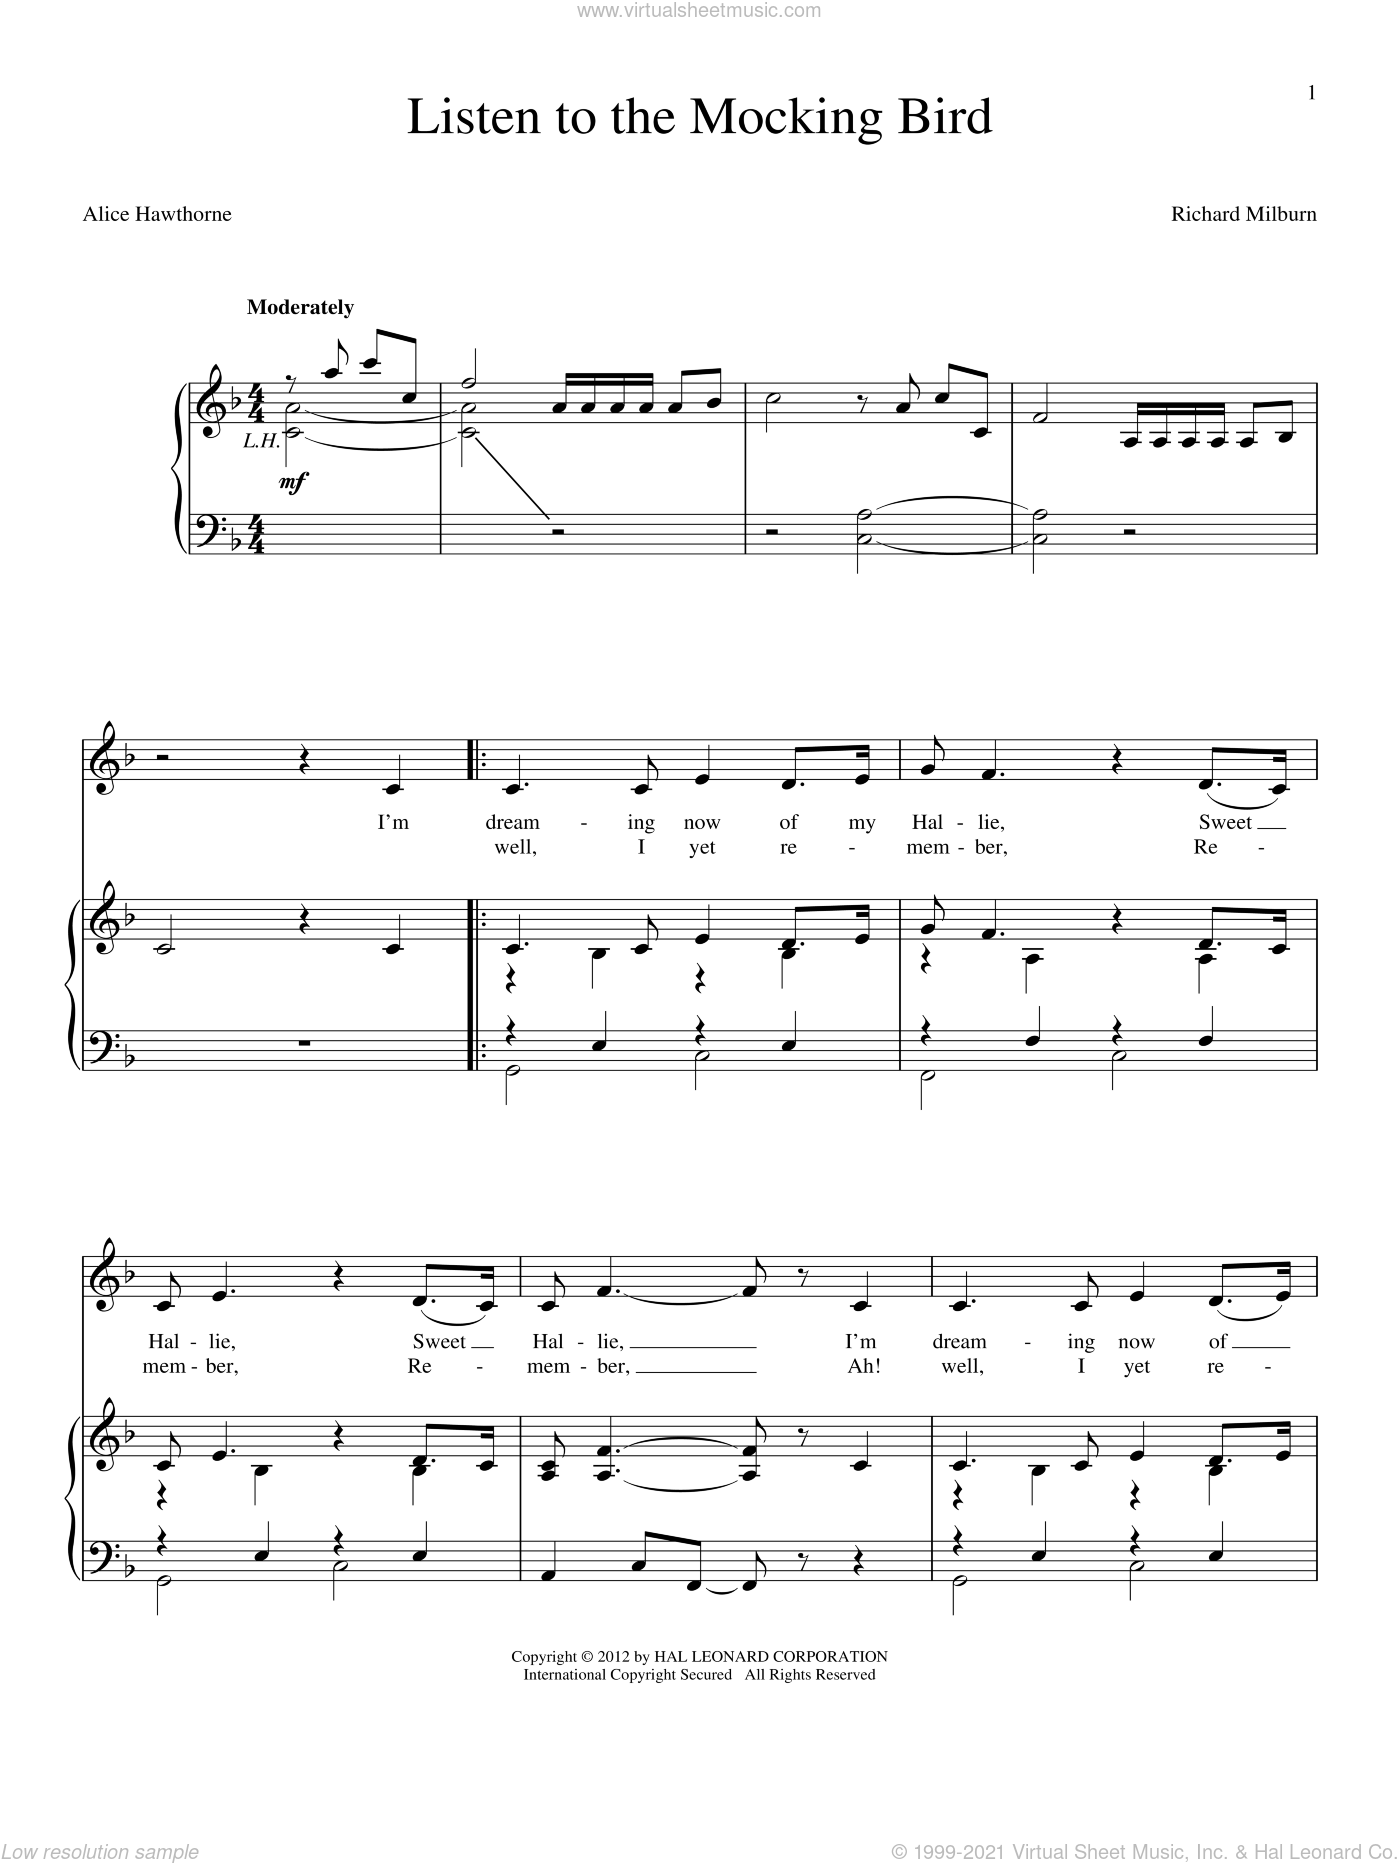 Listen To The Mocking Bird sheet music for voice and piano by Richard Milburn